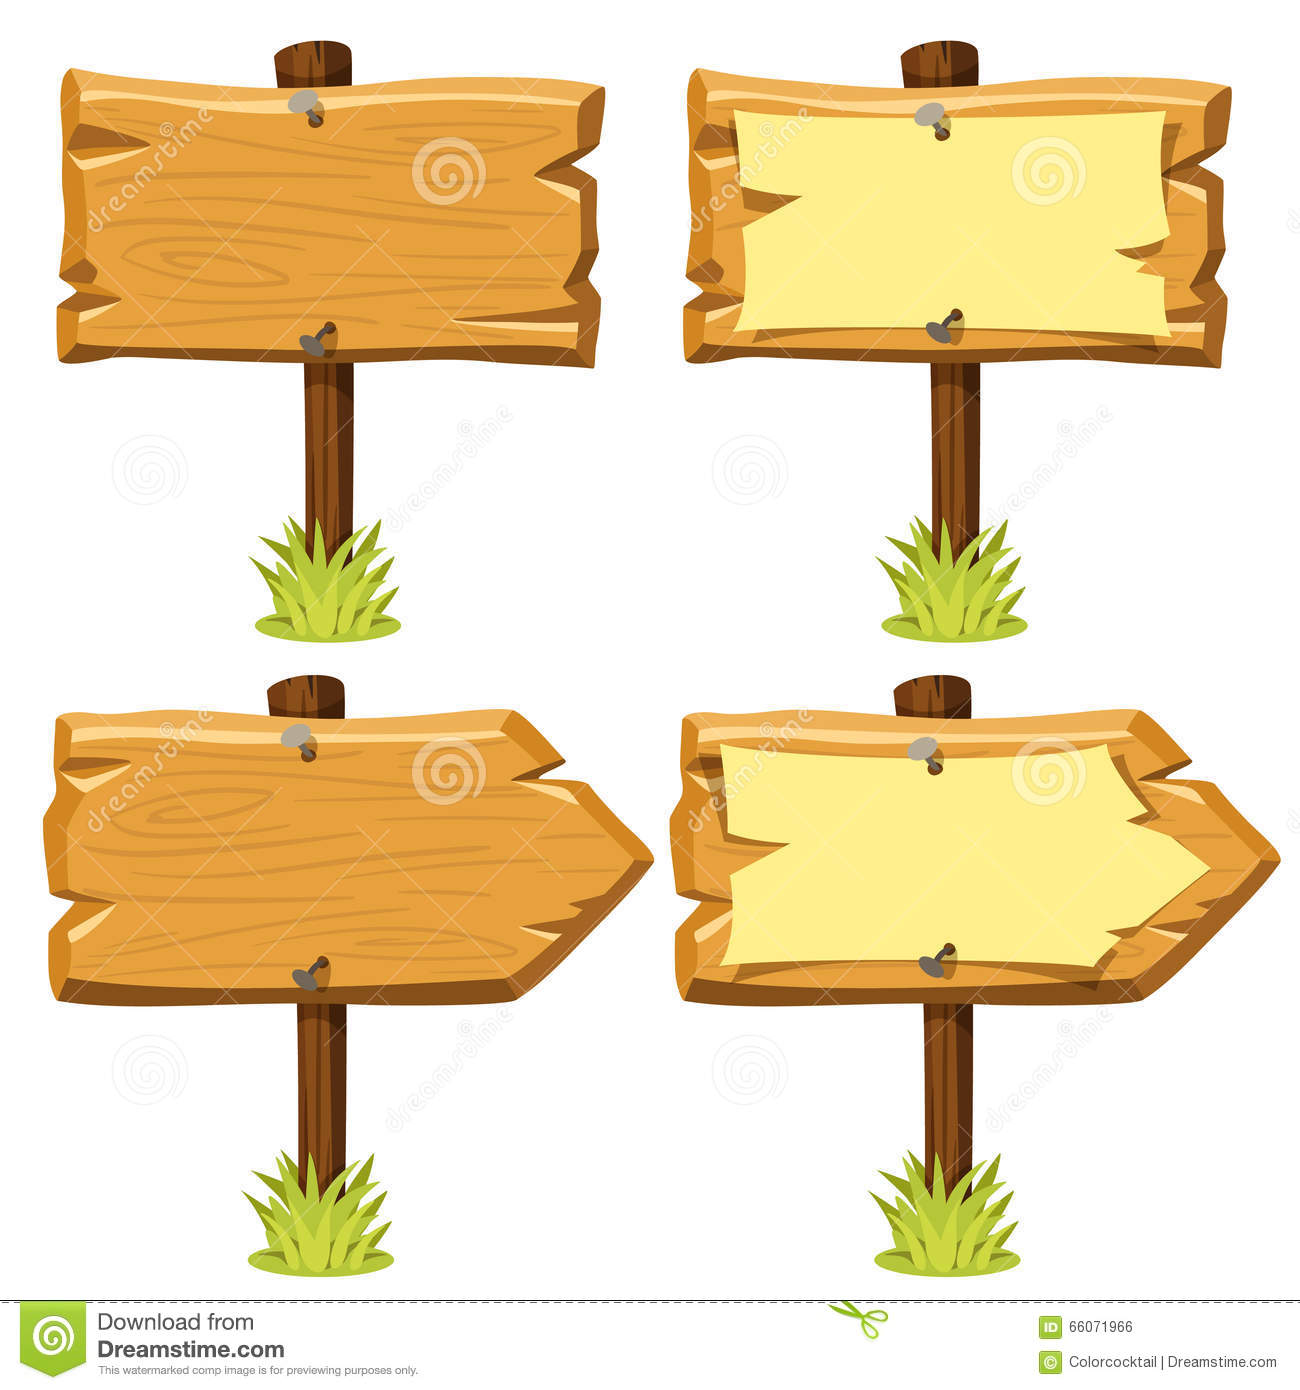 Old Wooden Signs Stock Vector - Image: 66071966